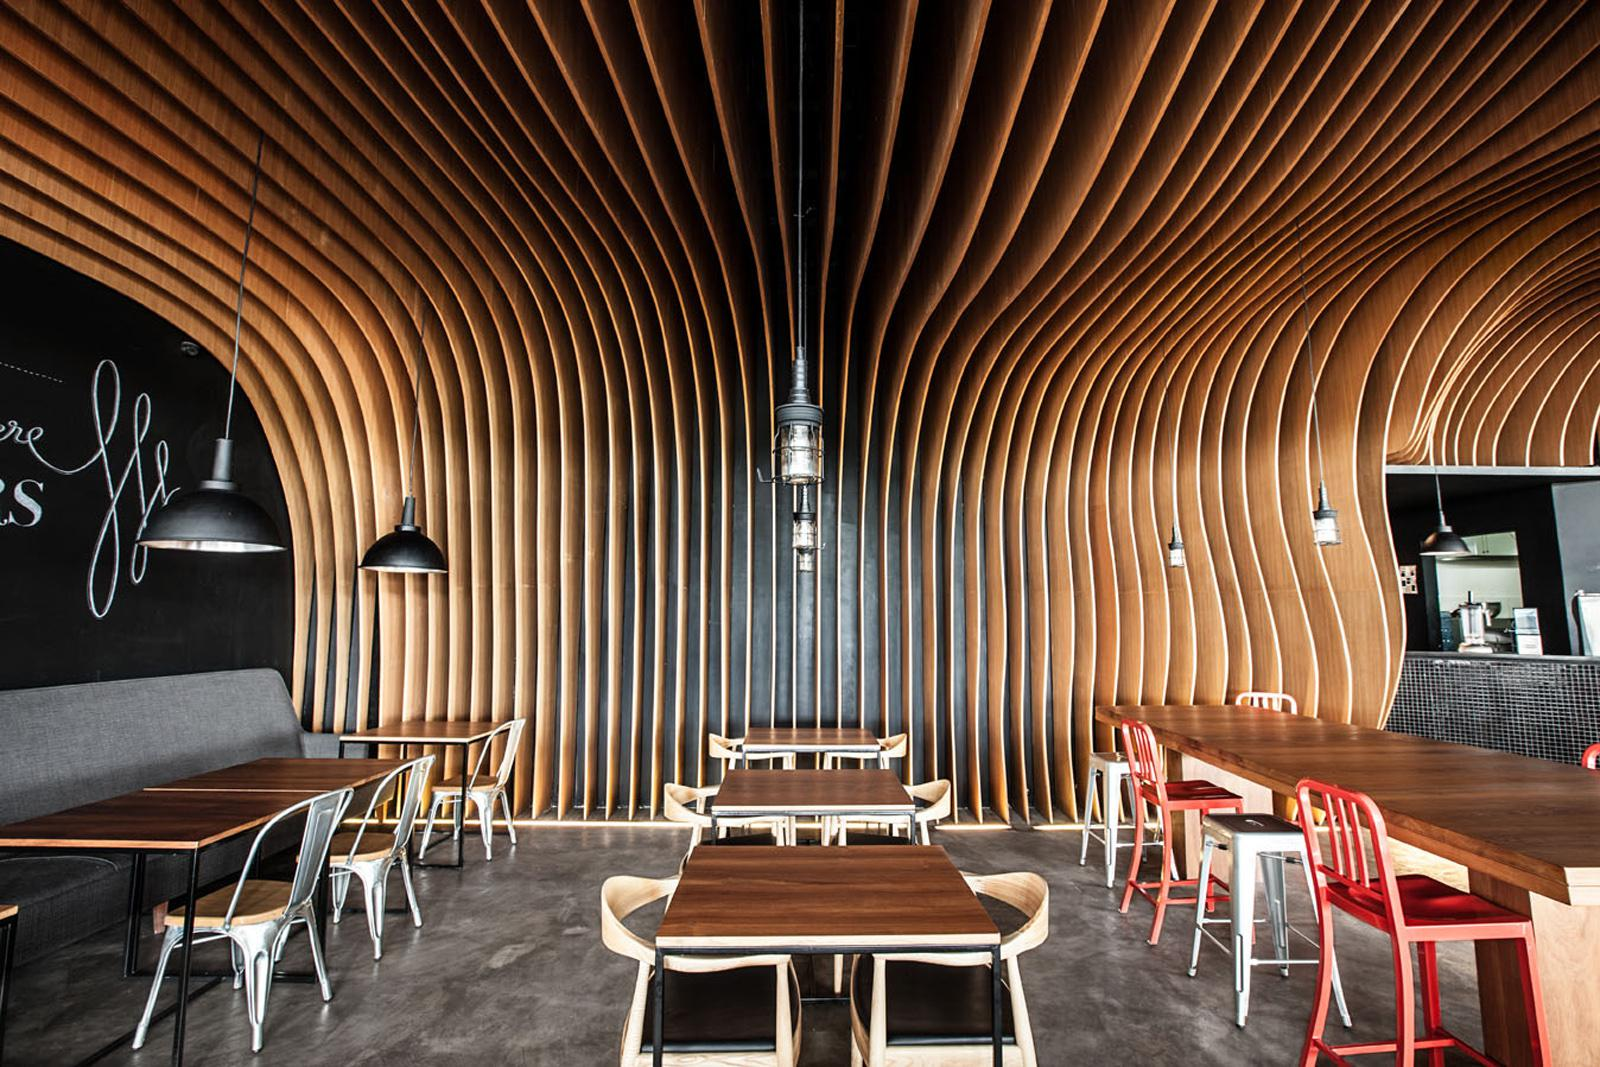 Six_Degrees_Cafe-OOZN_Design-6